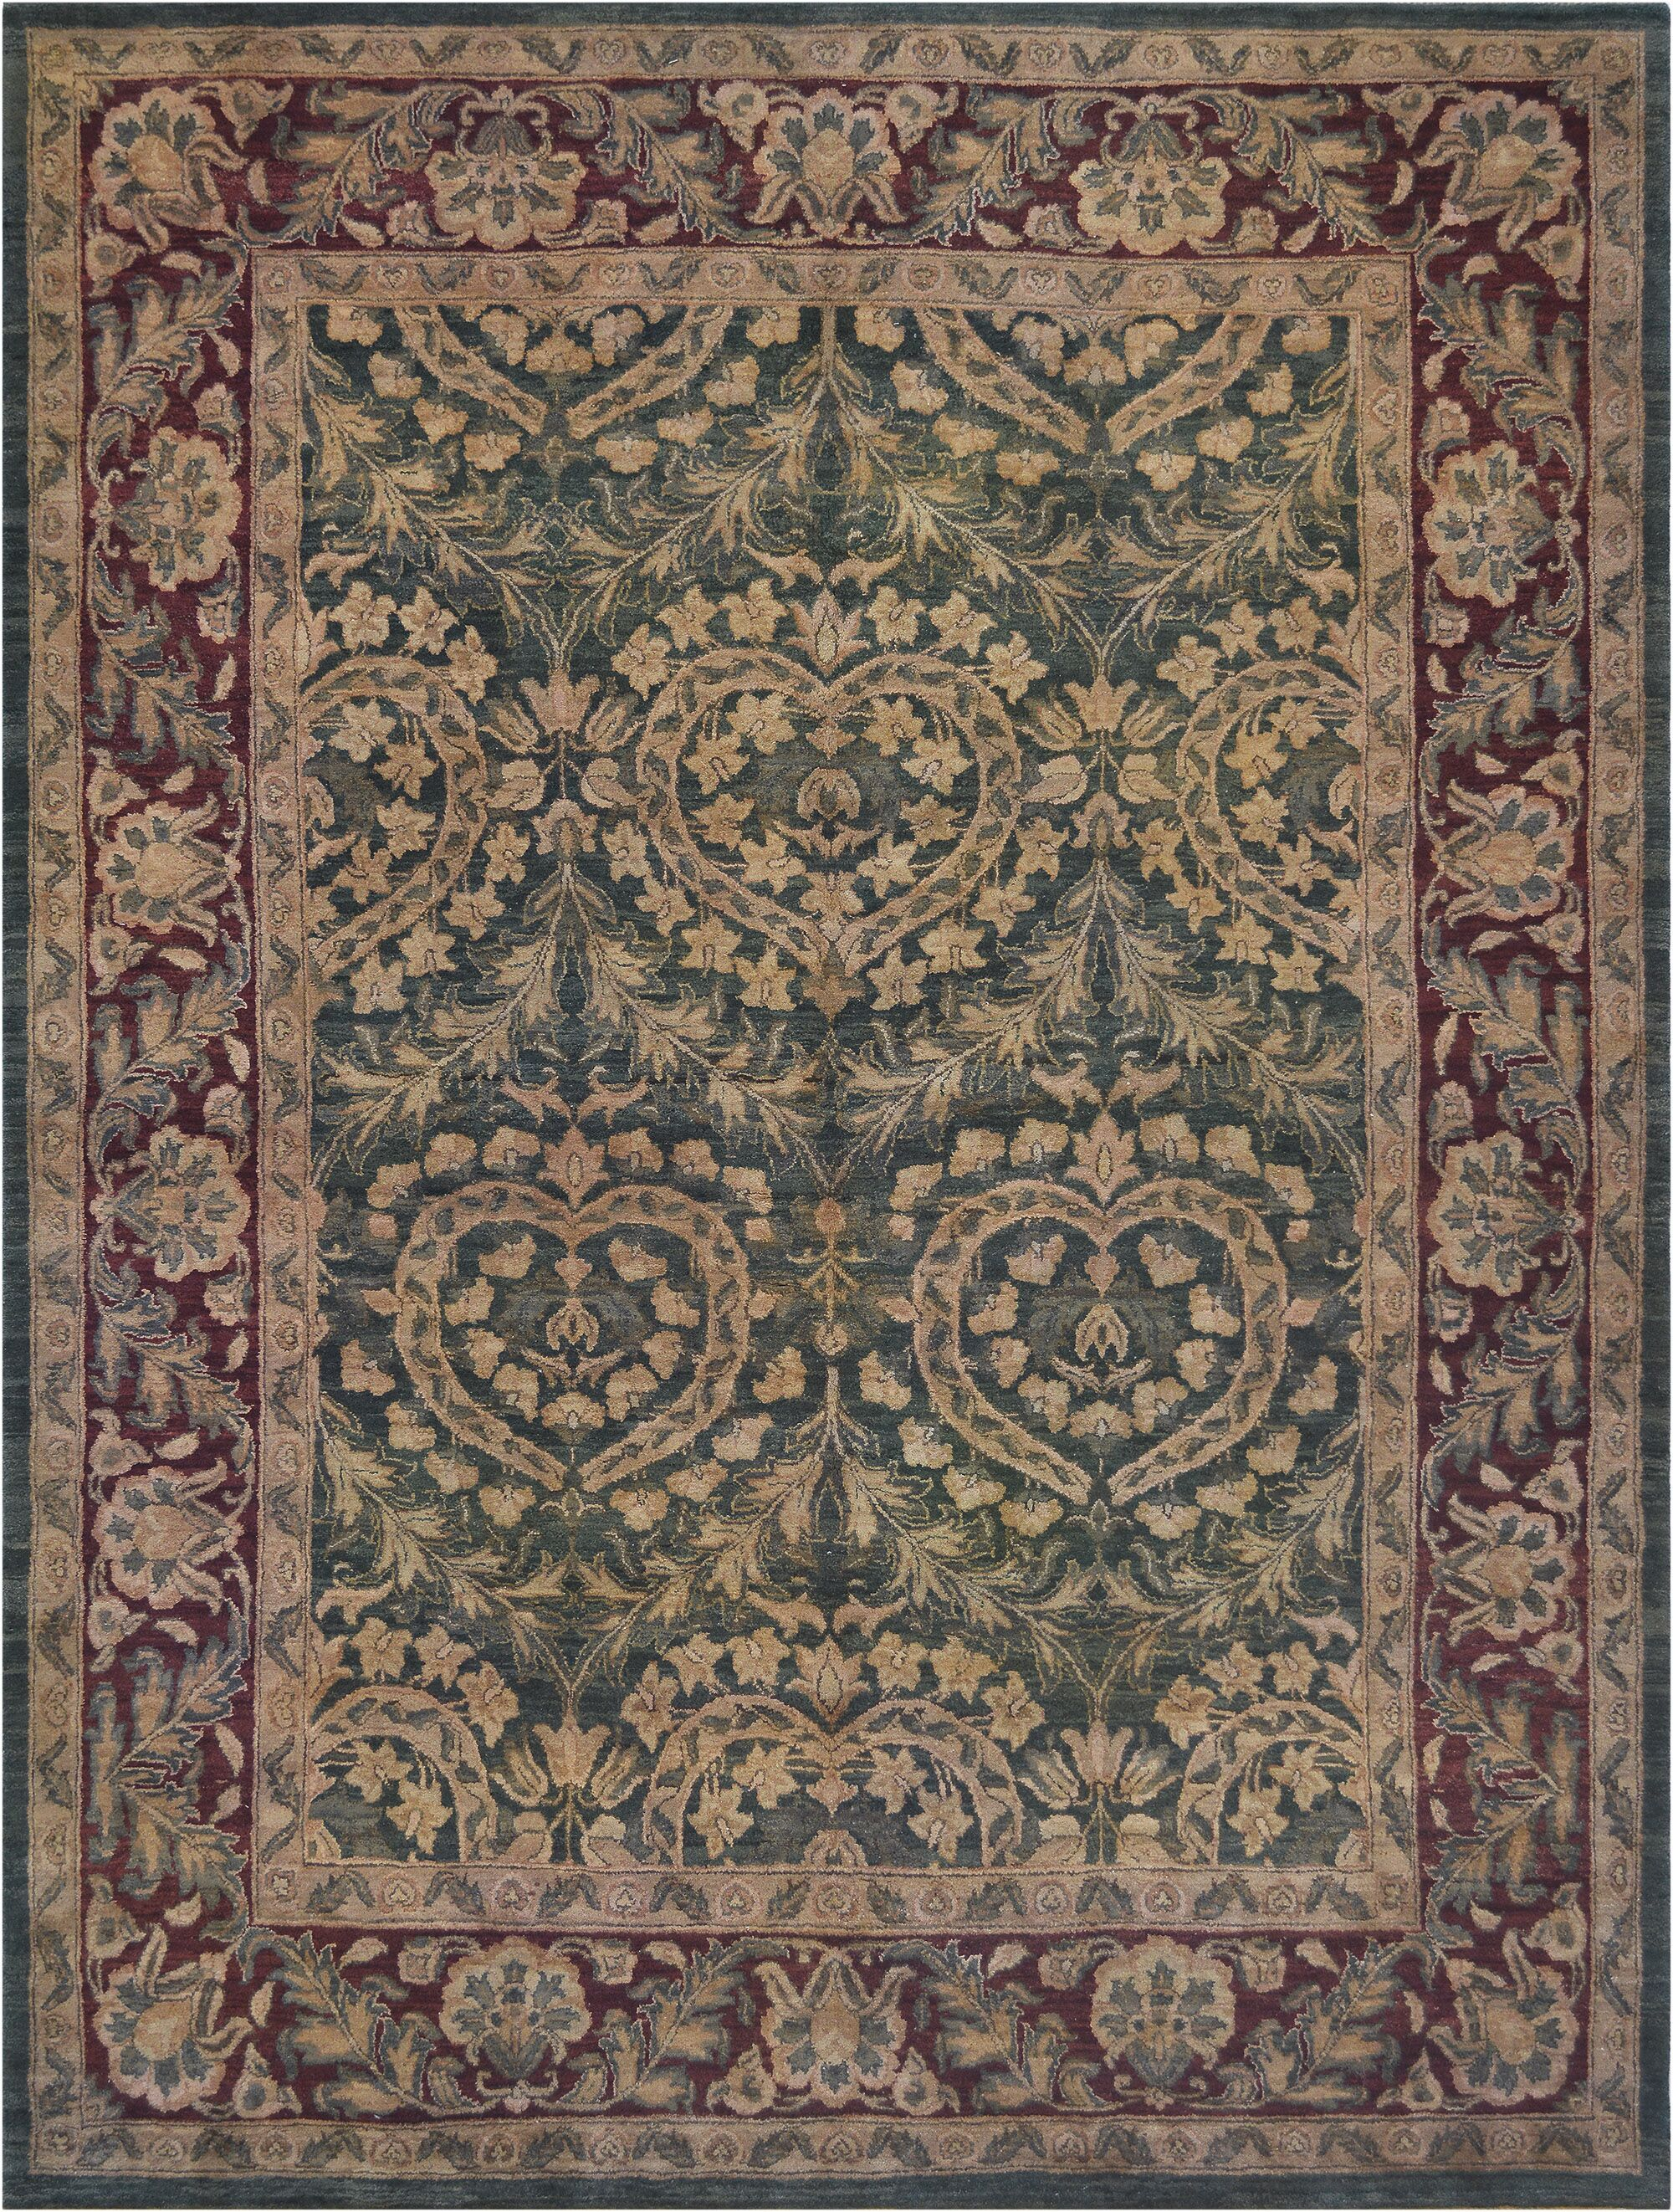 One-of-a-Kind Tabriz Quality Hand-Knotted Wool Beige/Green Indoor Area Rug